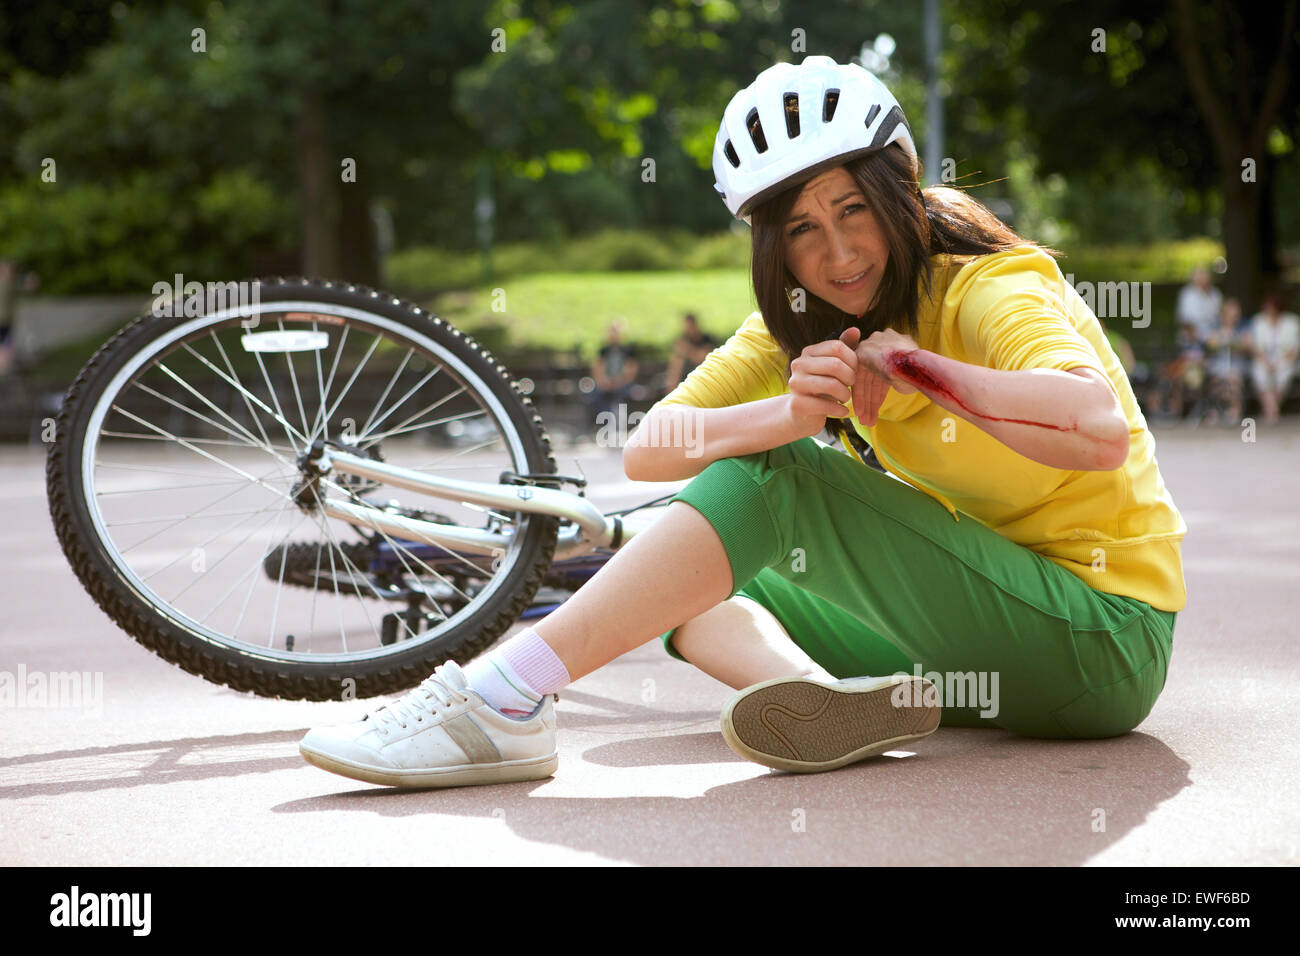 Young woman injured and clutching arm - Stock Image